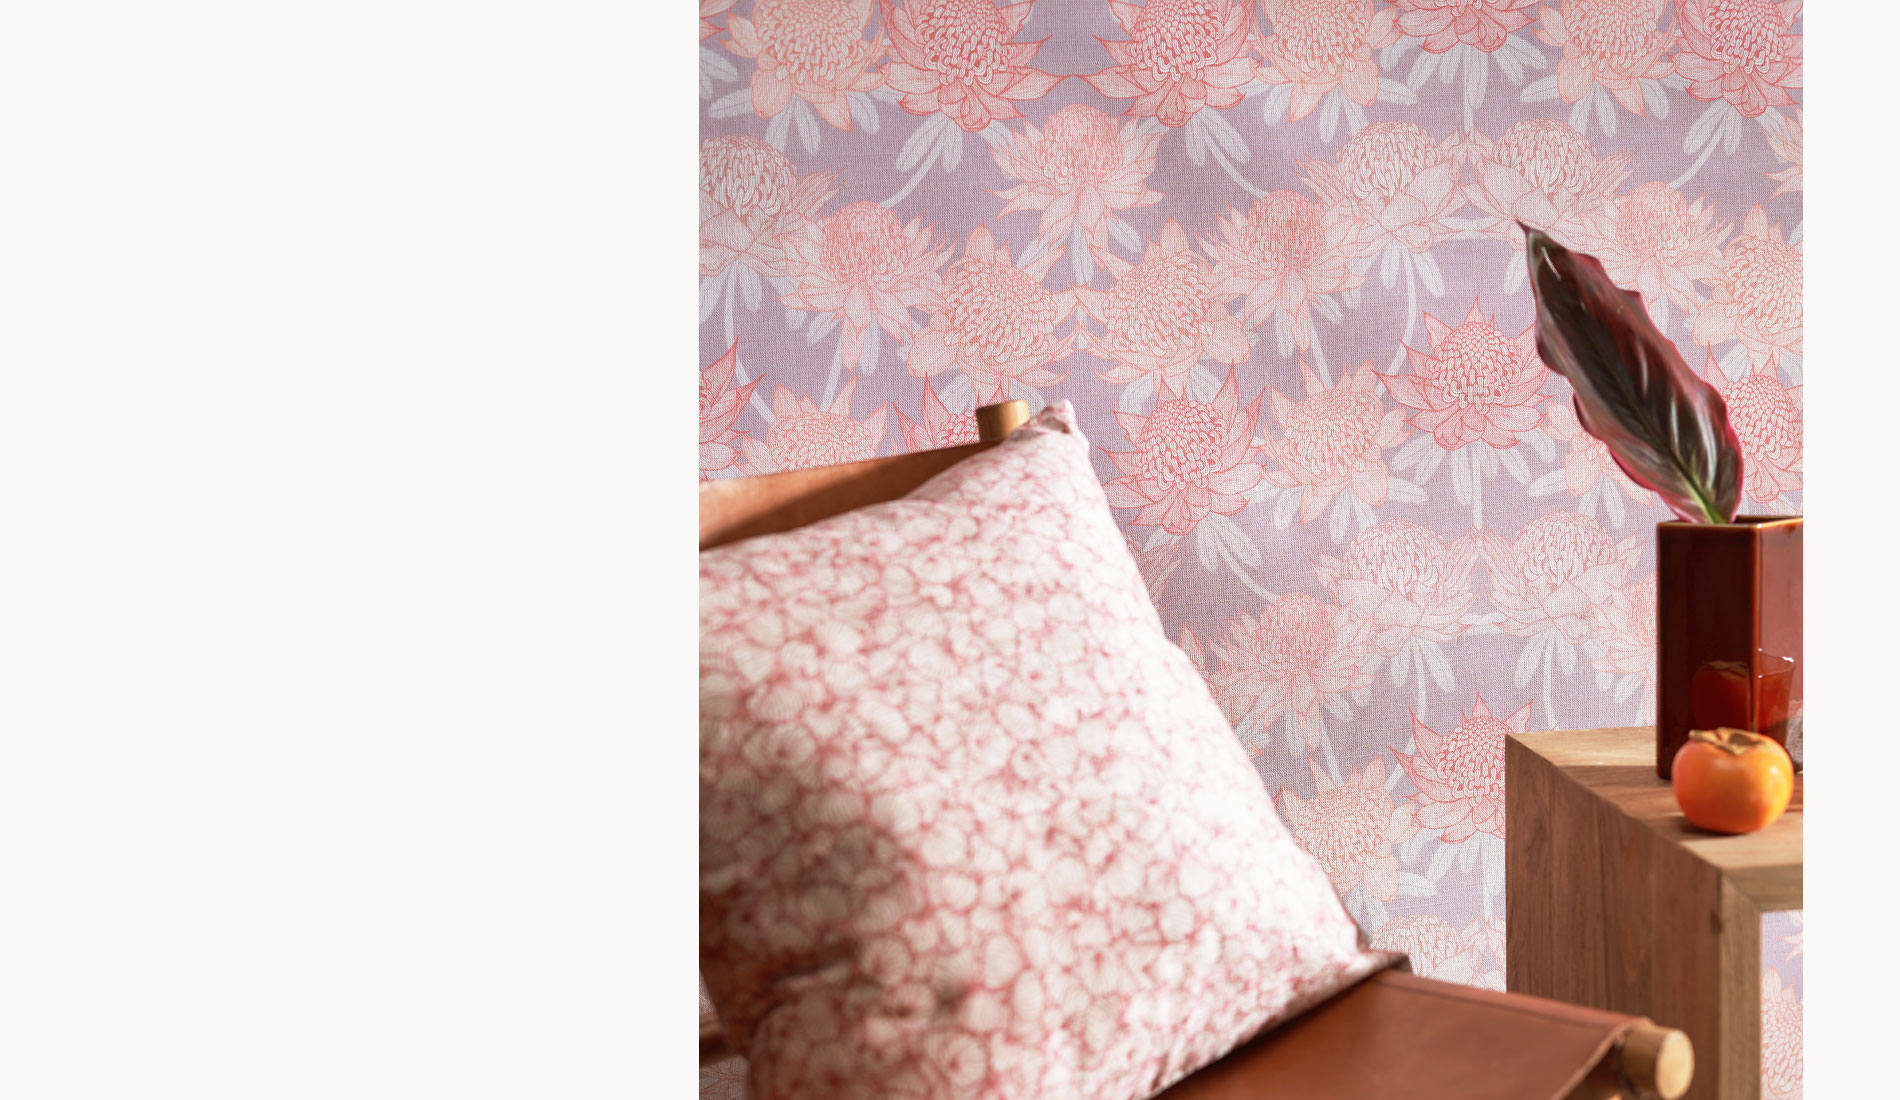 Waratah Garden Wallpaper from the Australian Lines Collection by Patricia Braune